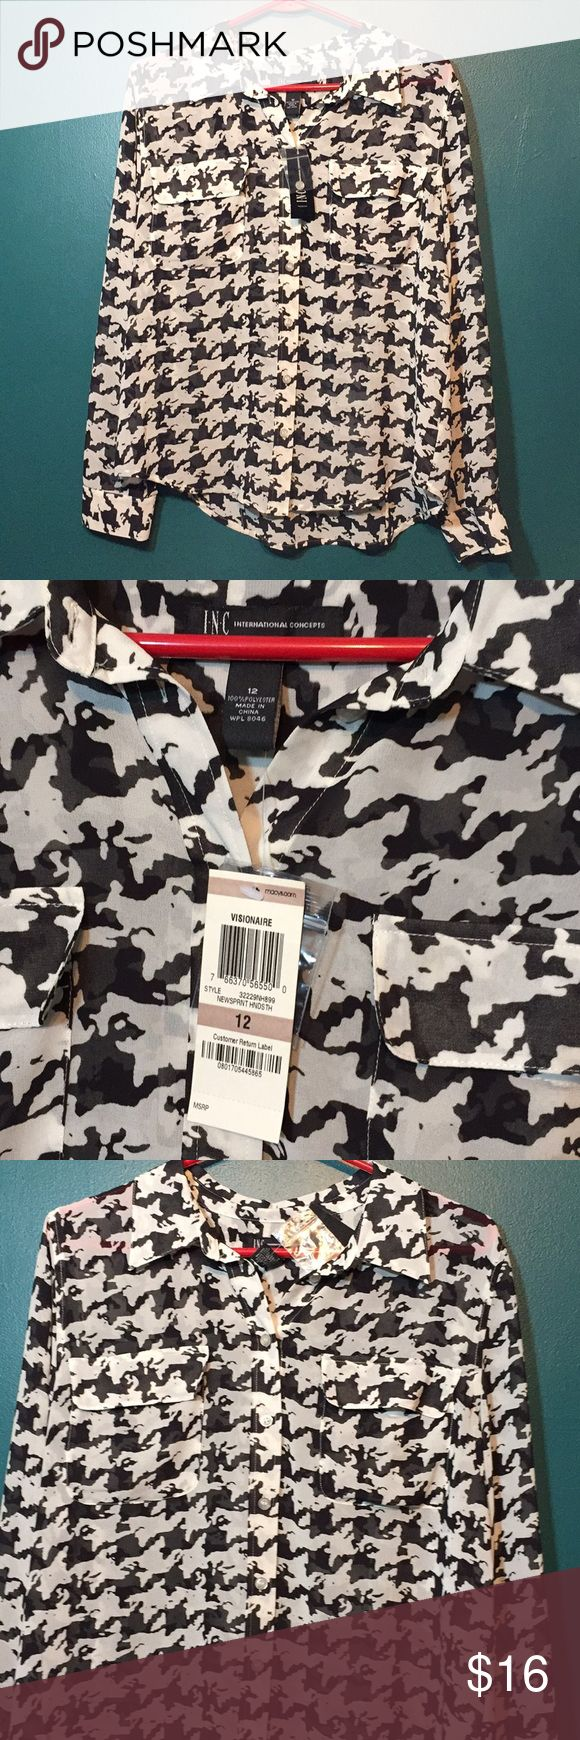 NWT Sheer Blouse INC NWT INC International Concepts Sheer Blouse. Black and white button up. Size 12. INC International Concepts Tops Blouses